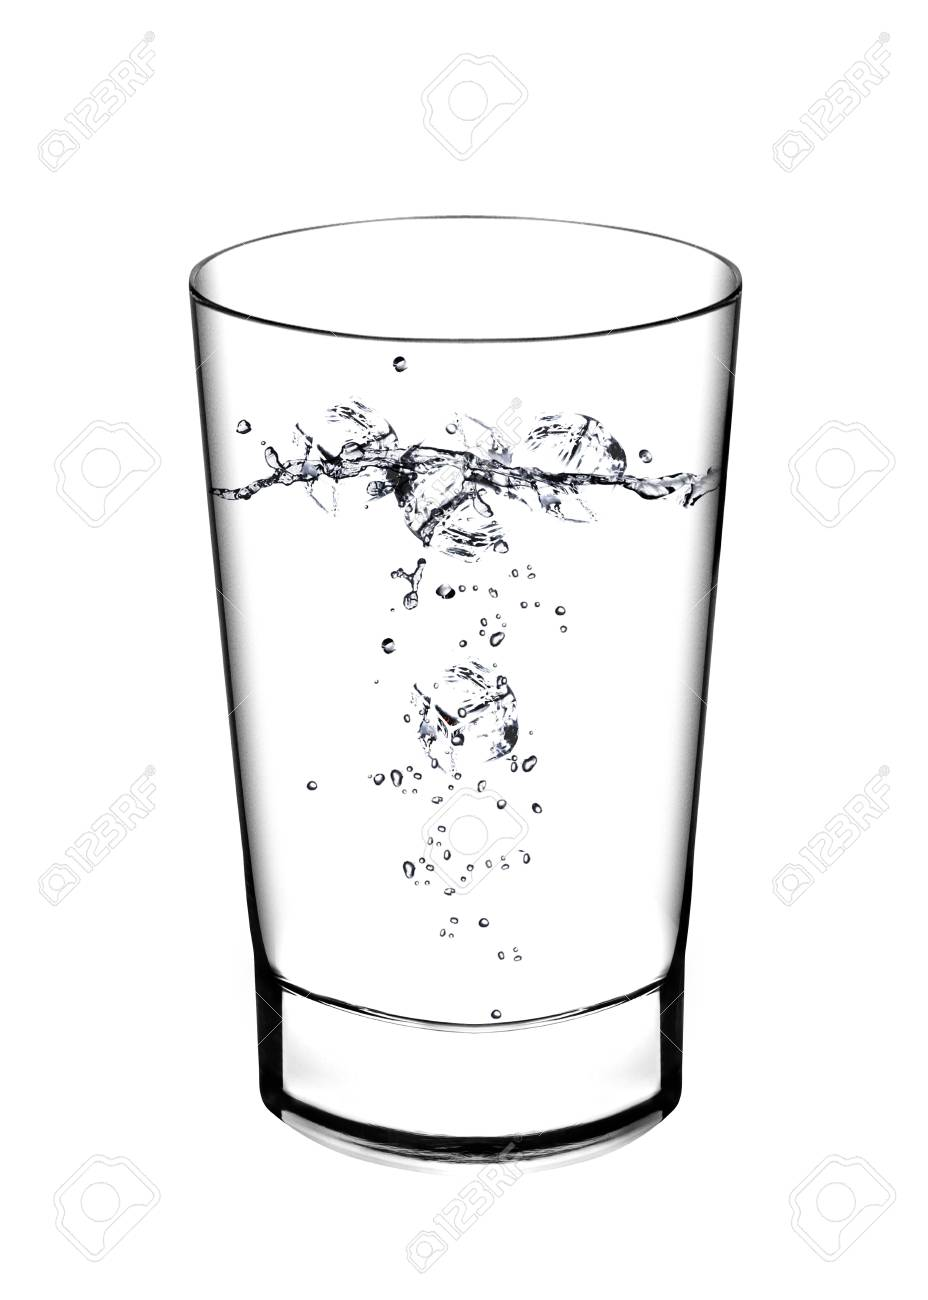 e871151d643 A glass of water and water splahes on white background Stock Photo -  13251516